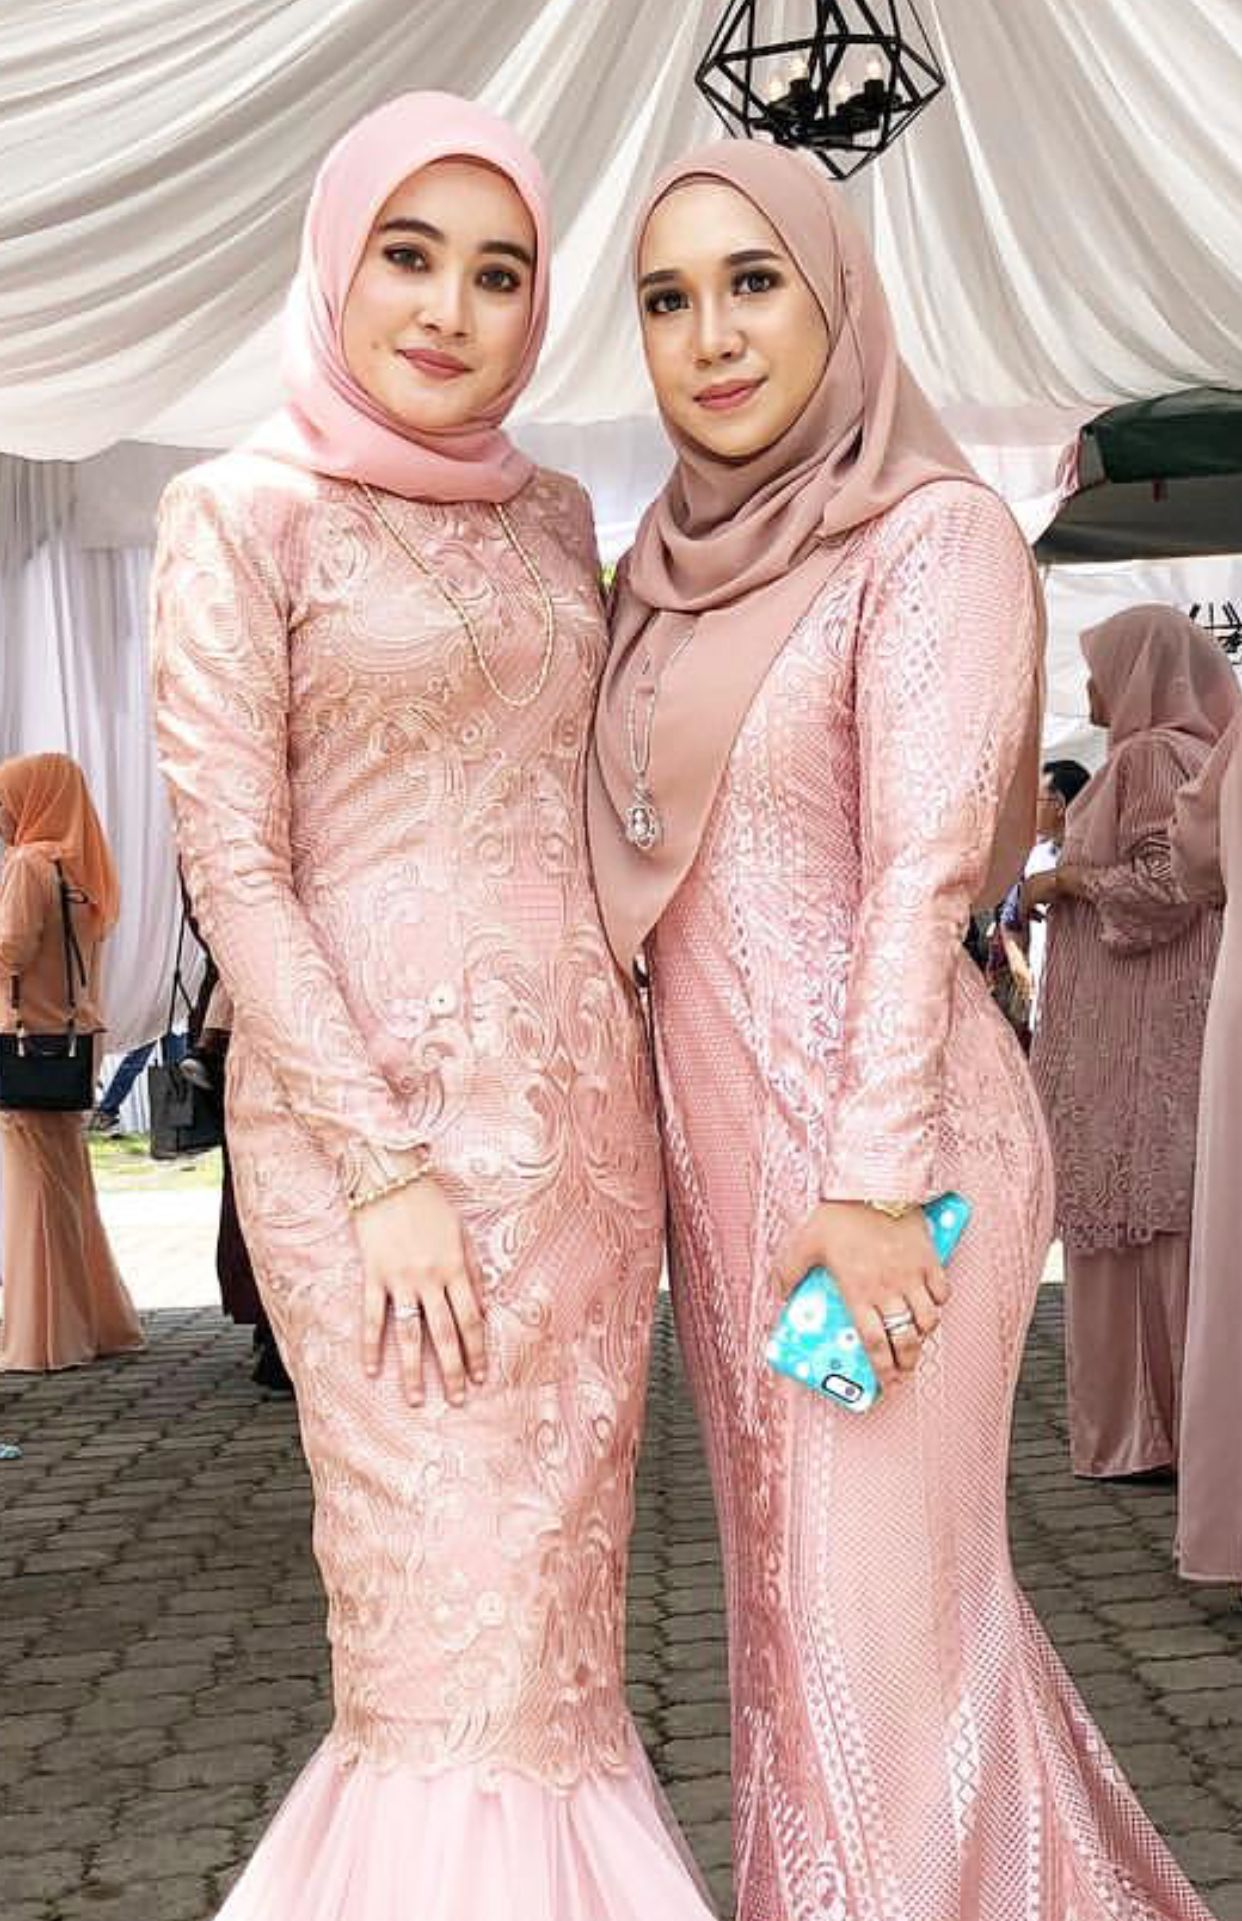 Pin By Aarif Fpf Farchip Sh On Aarf Pinterest Dress Wanita Farra Hijab Veil Gown Veils Peplum